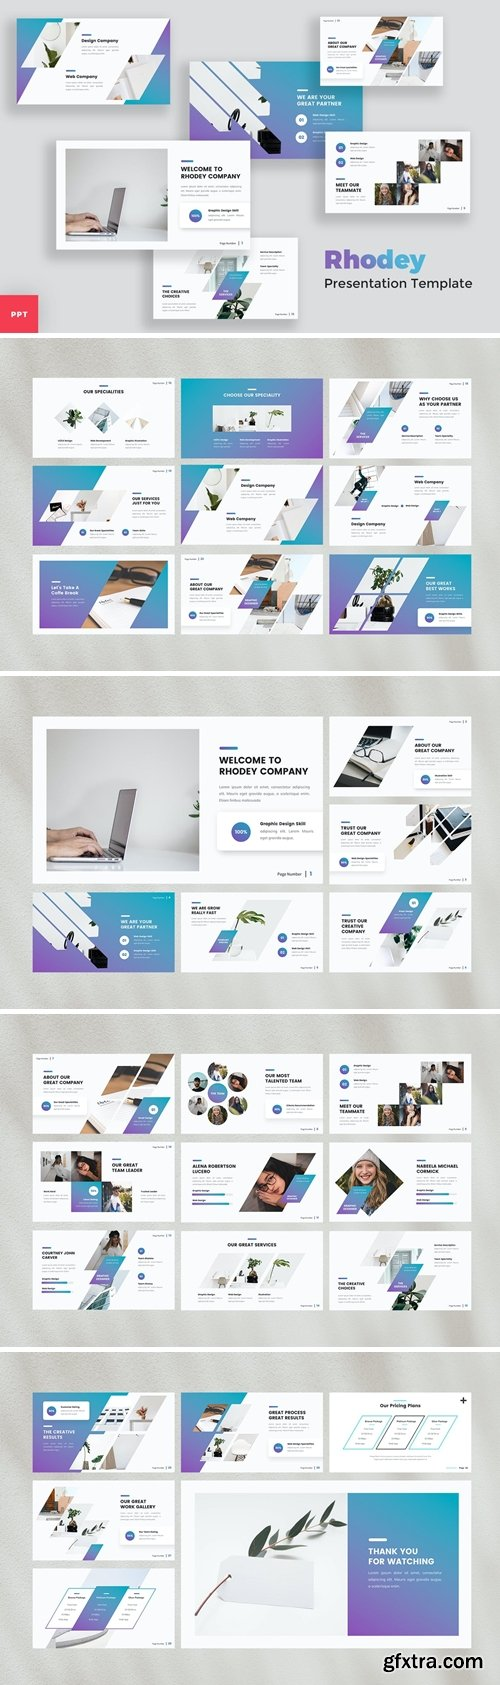 Creative Modern Powerpoint, Keynote and Google Slides Templates